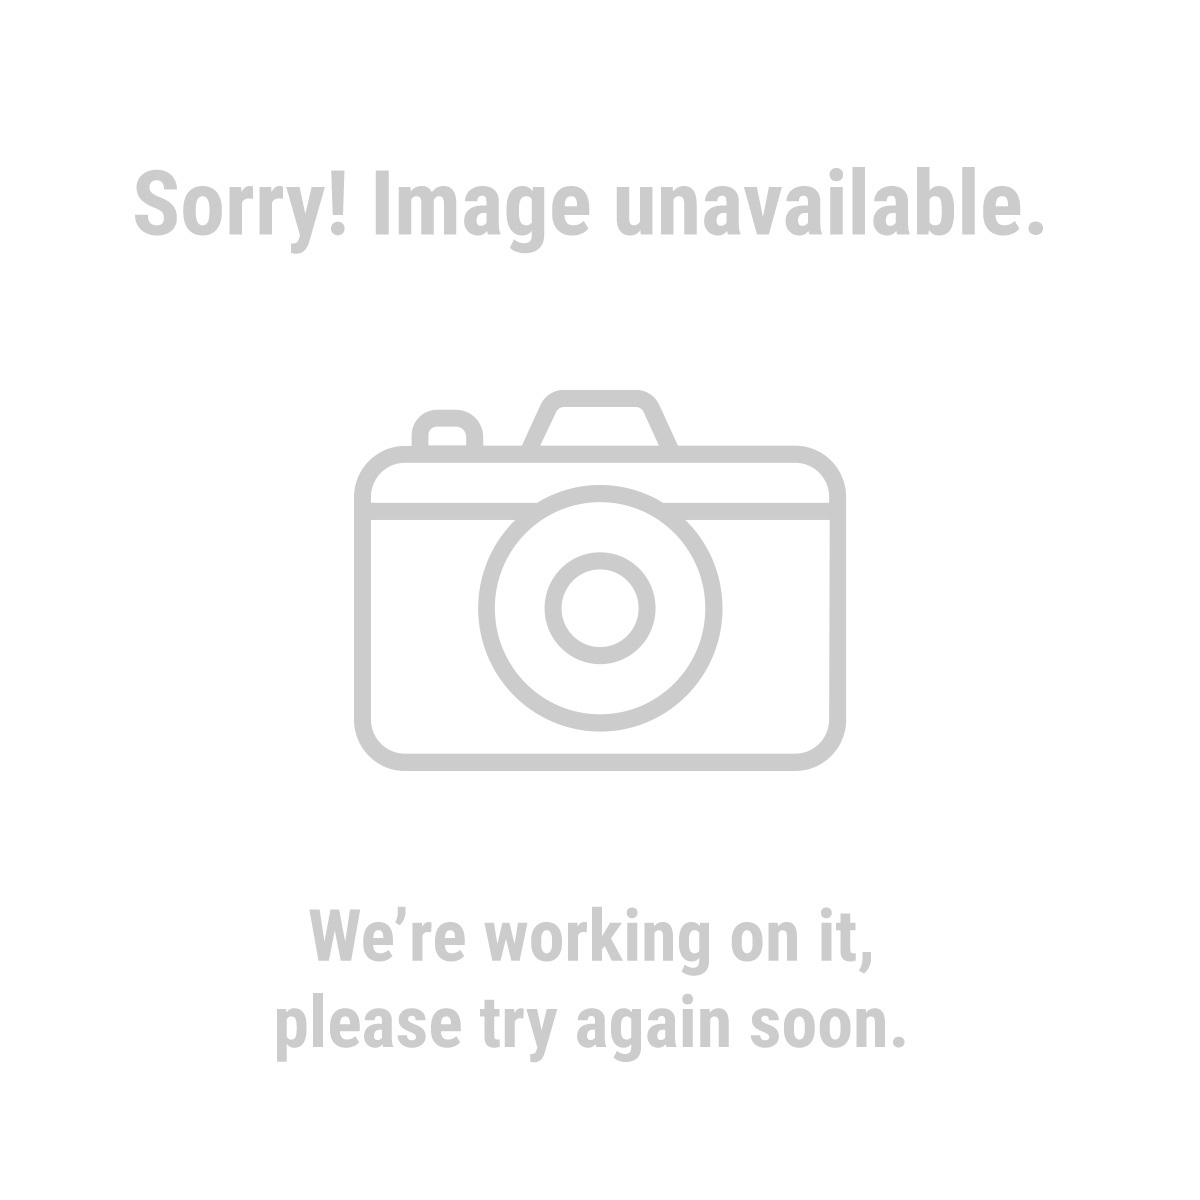 Cen-Tech 66319 Digital Thickness Gauge